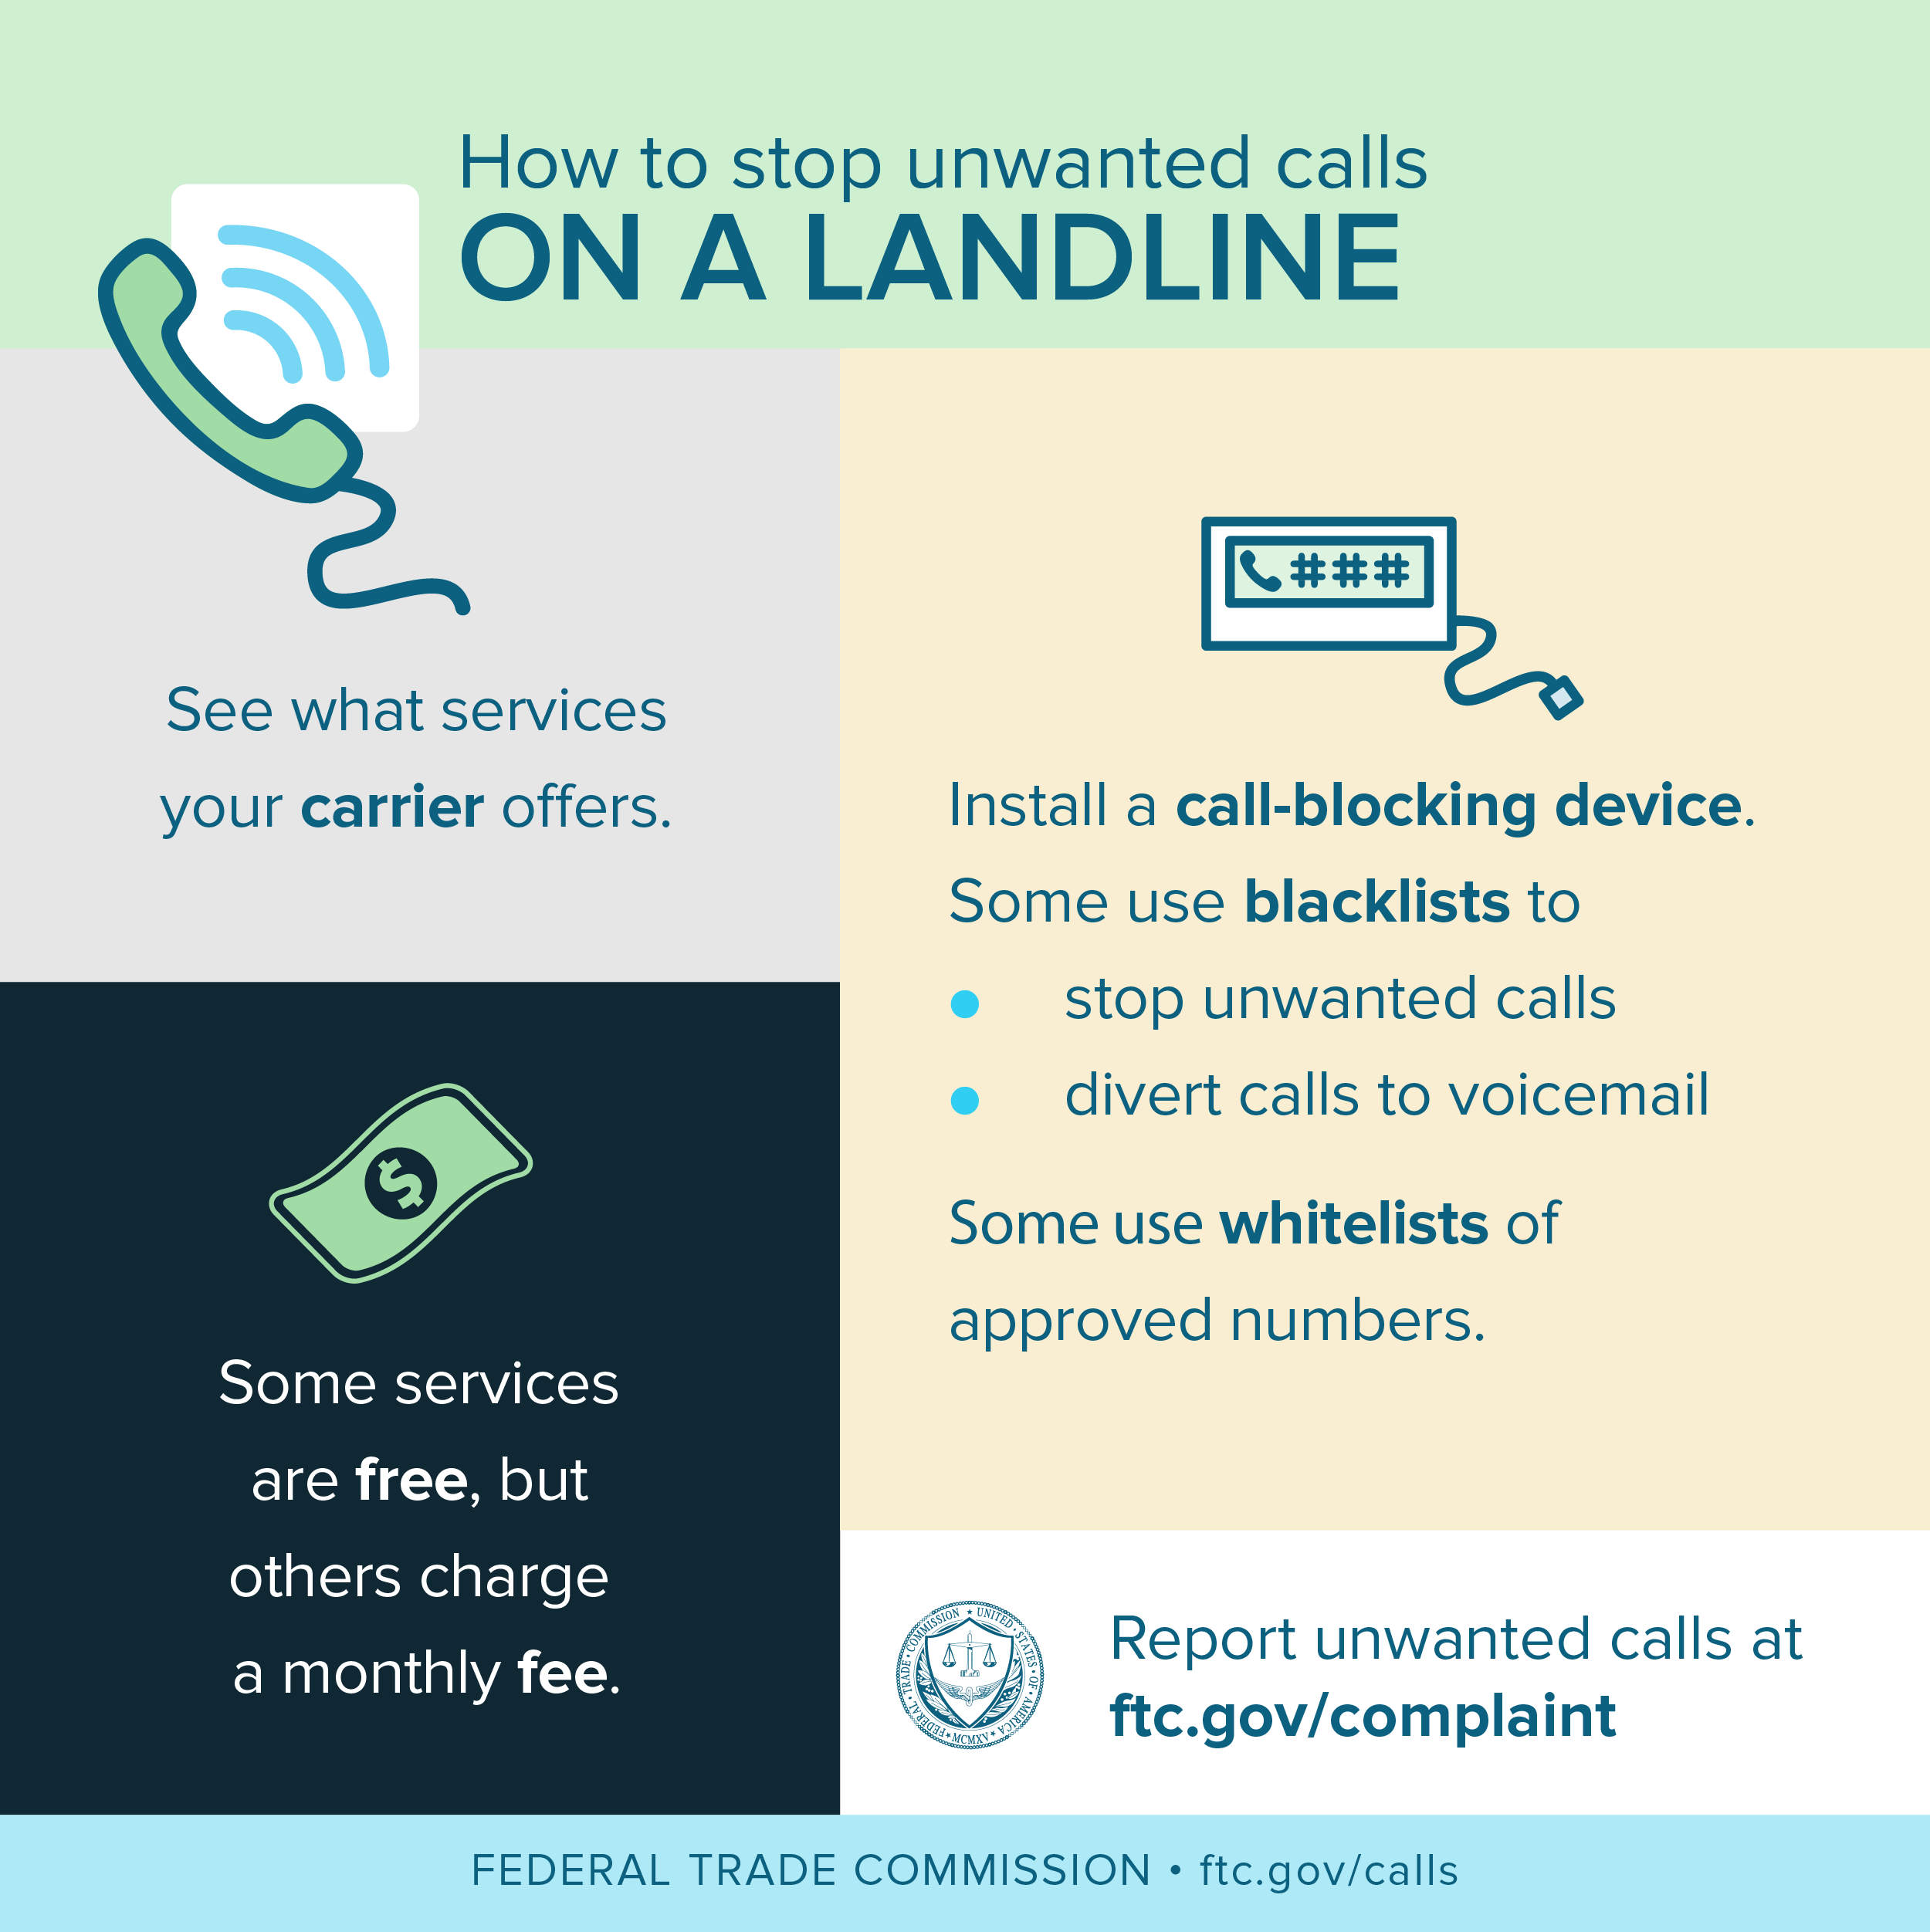 How to stop unwanted calls ON A LANDLINE Report unwanted calls at ftc.gov/complaint FEDERAL TRADE COMMISSION  ftc.gov/calls See what services your carrier oers. Some services are free, but others charge a monthly fee. DRAFT  3/19/18 Install a call-blocking device. Some use blacklists to • stop unwanted calls • divert calls to voicemail Some use whitelists of approved numbers.